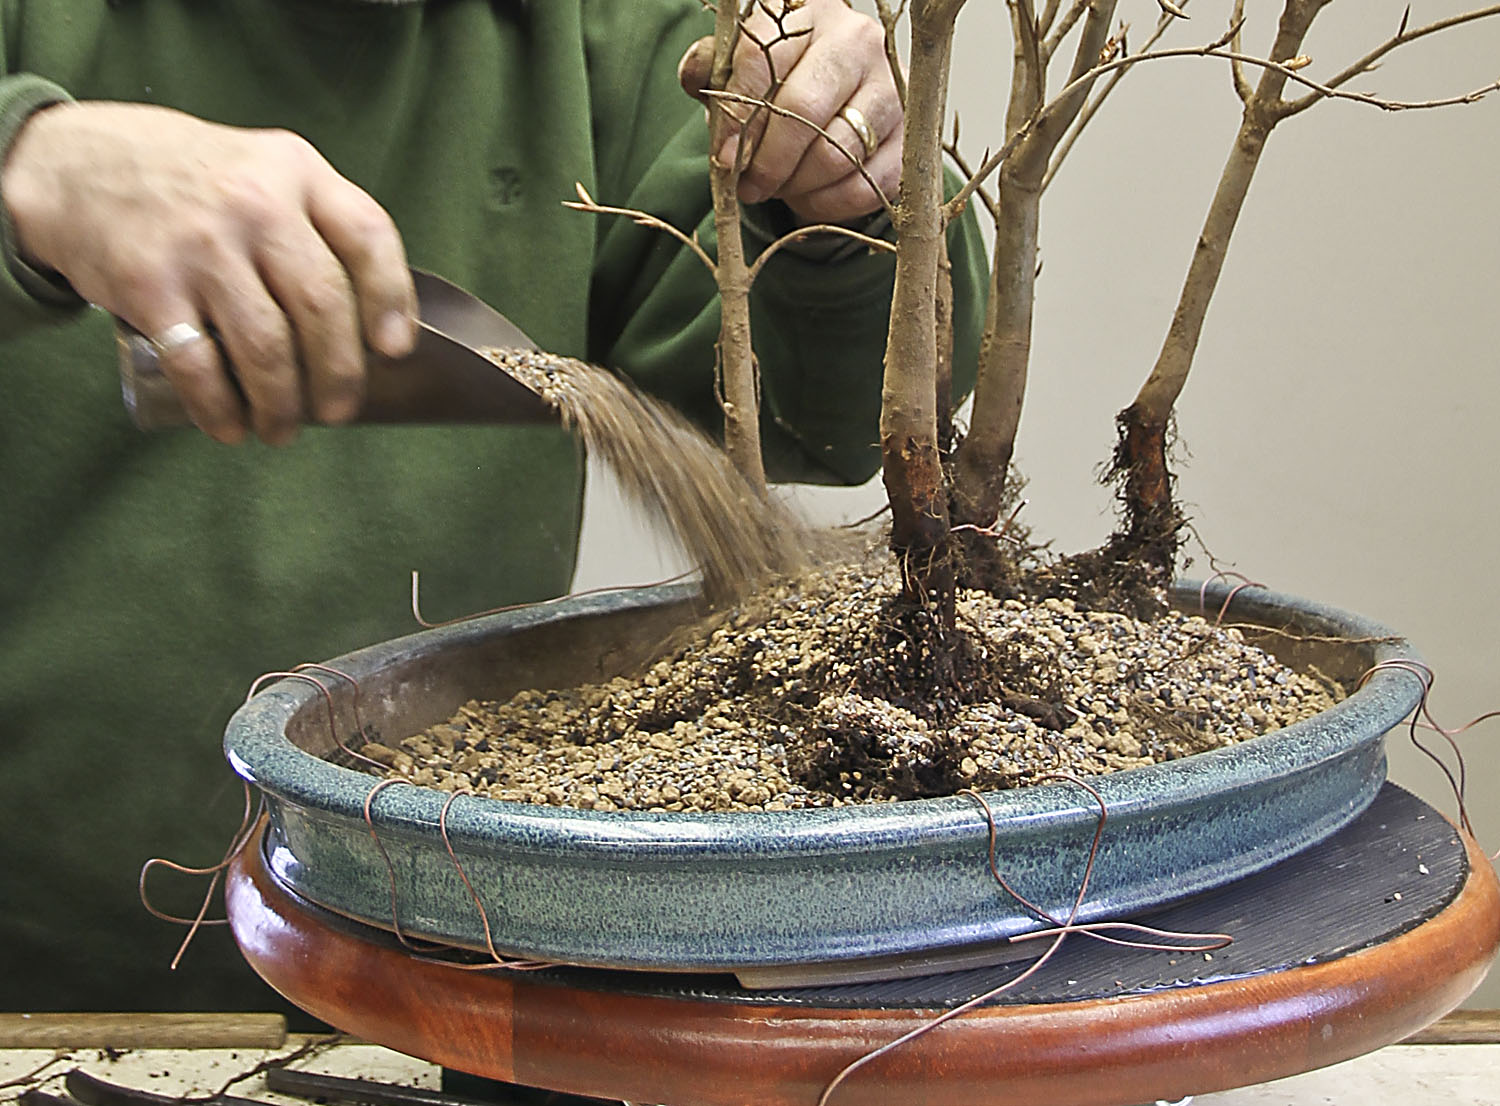 Pleasing Creating A Beech Forest Bonsai Valavanis Bonsai Blog Wiring Digital Resources Funapmognl